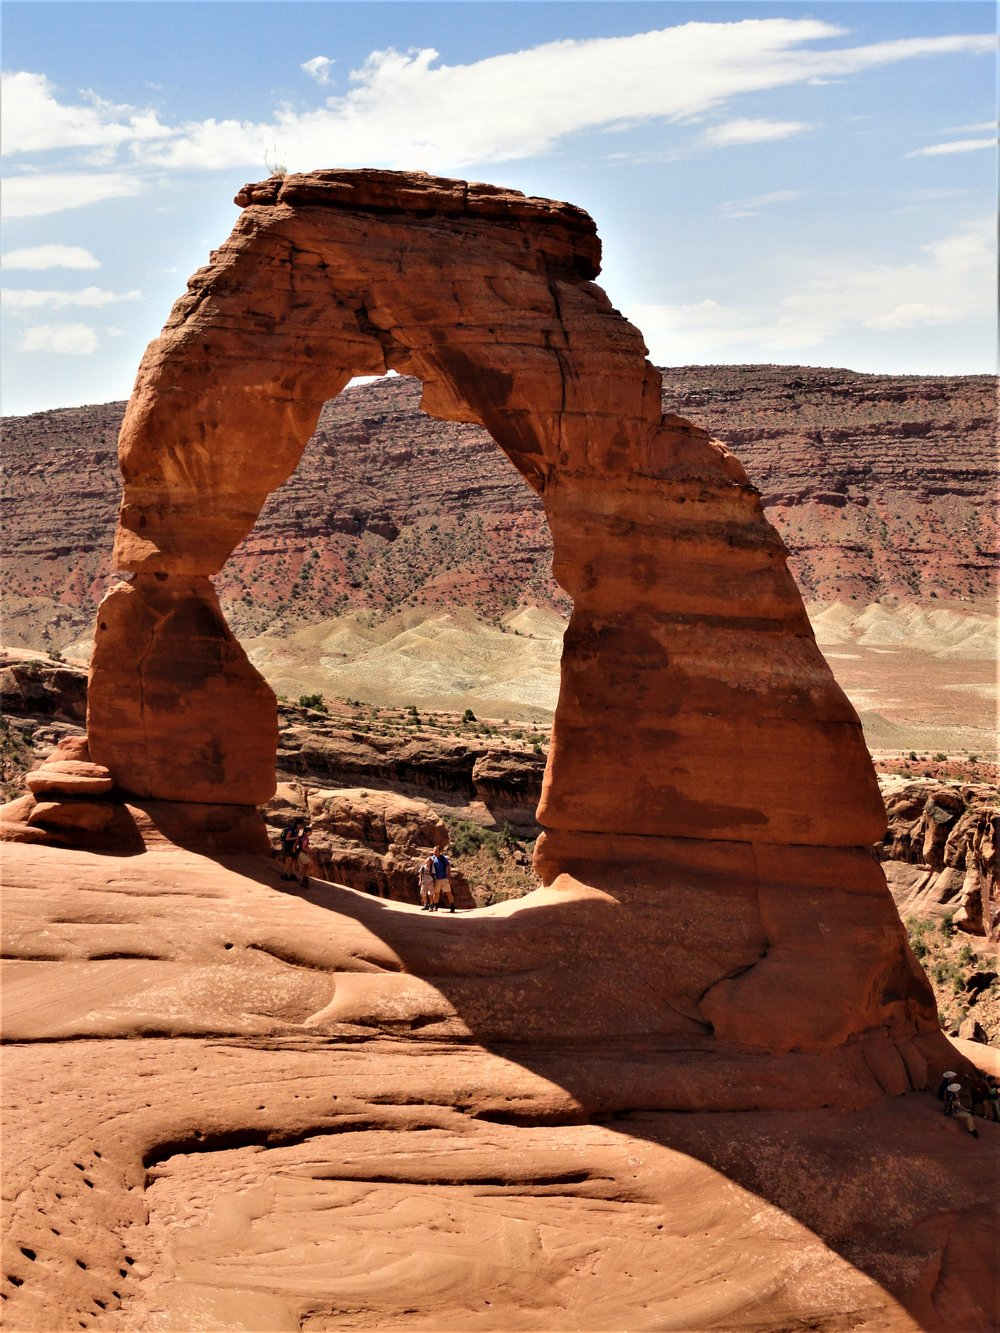 Delicate Arch, Arches National Park, Utah. June 15, 2018. Photo by Abel Keogh